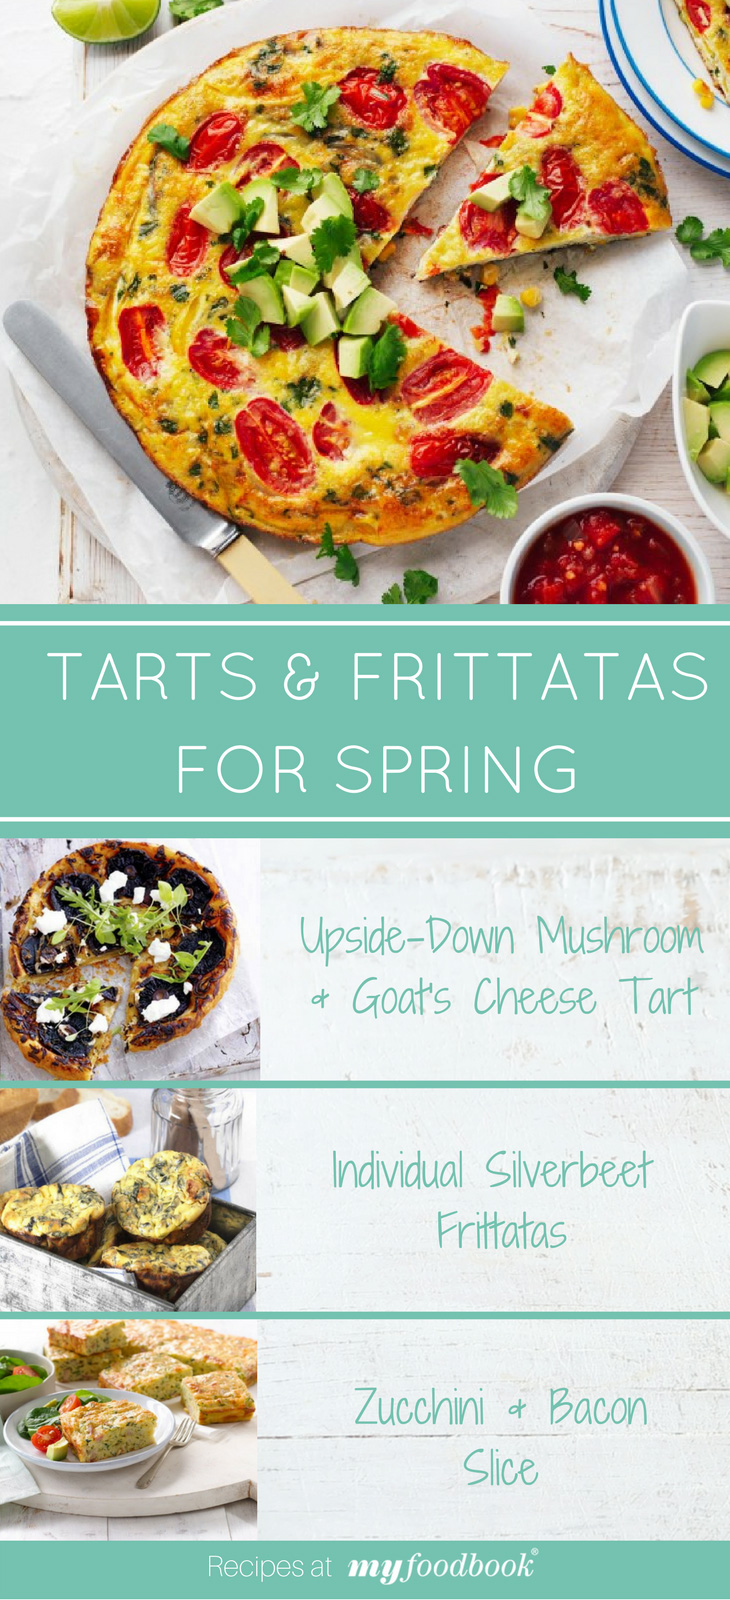 Make these delicious tart and frittata recipes for spring entertaining from myfoodbook